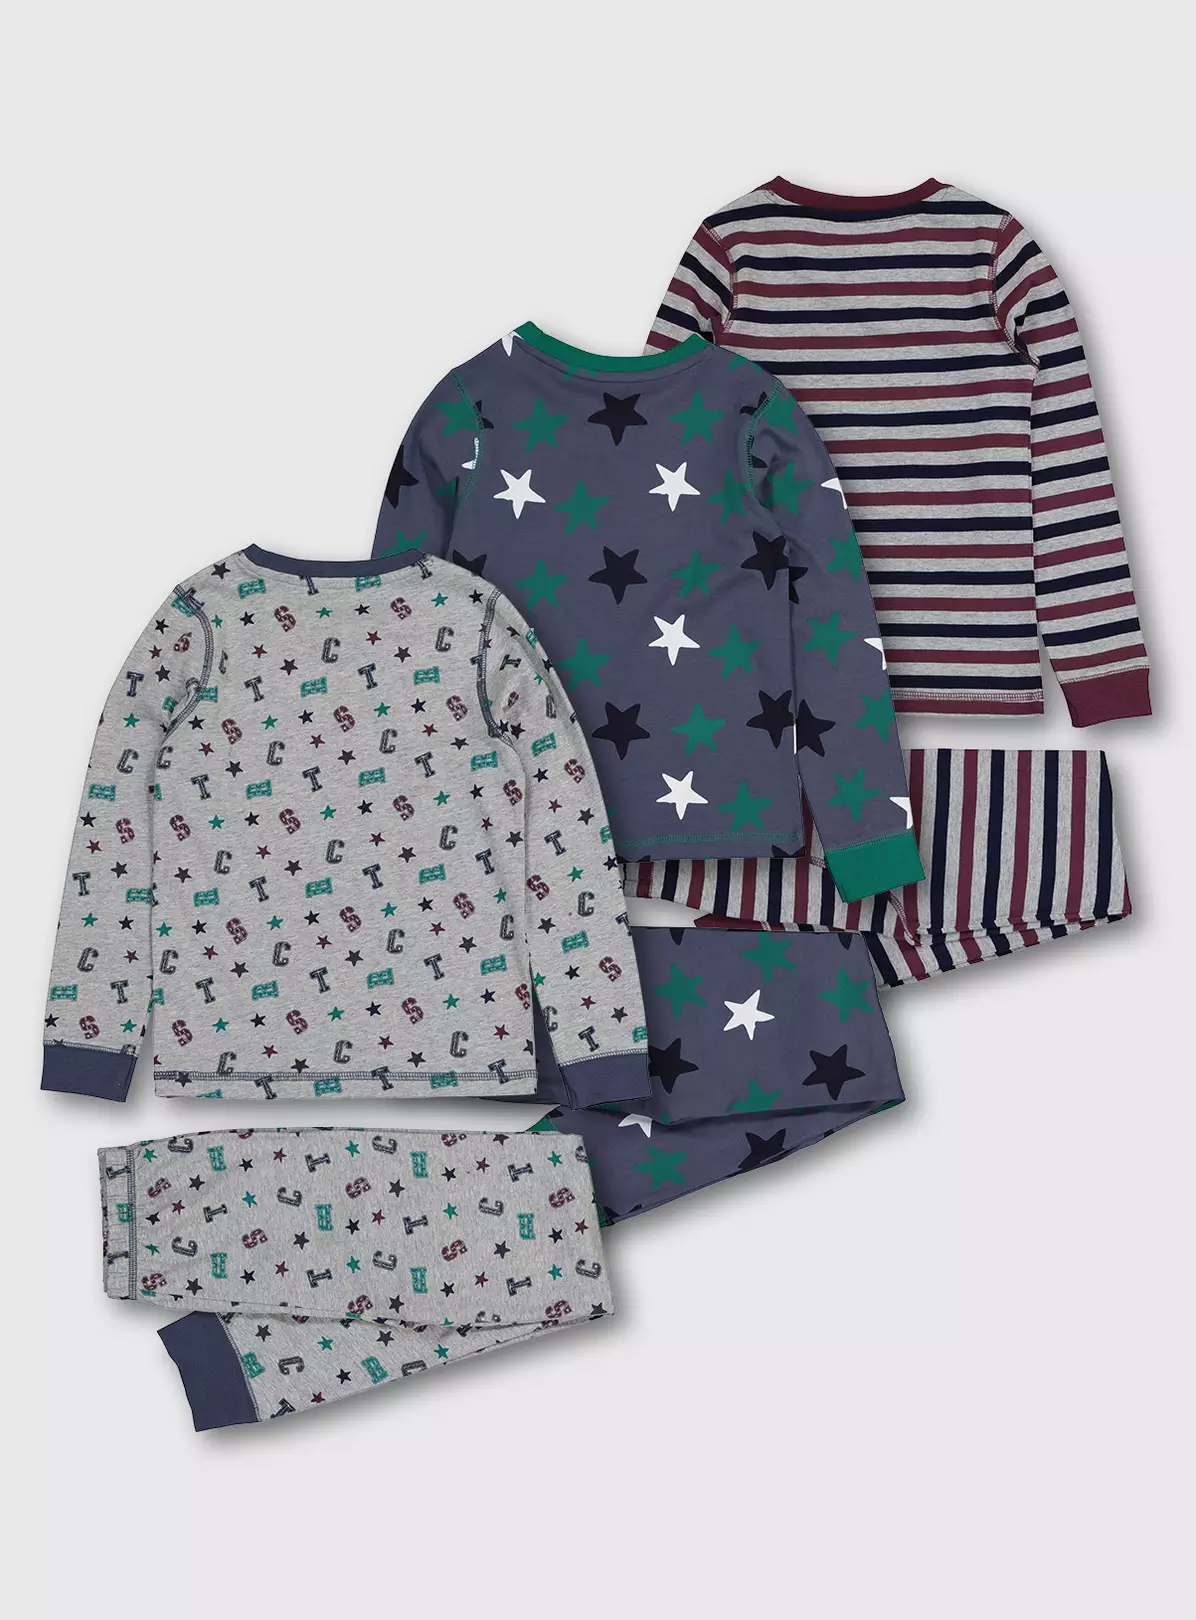 25% Off Letter & Star Snuggle Fit Pyjama 3 Pack - 1.5-2 years